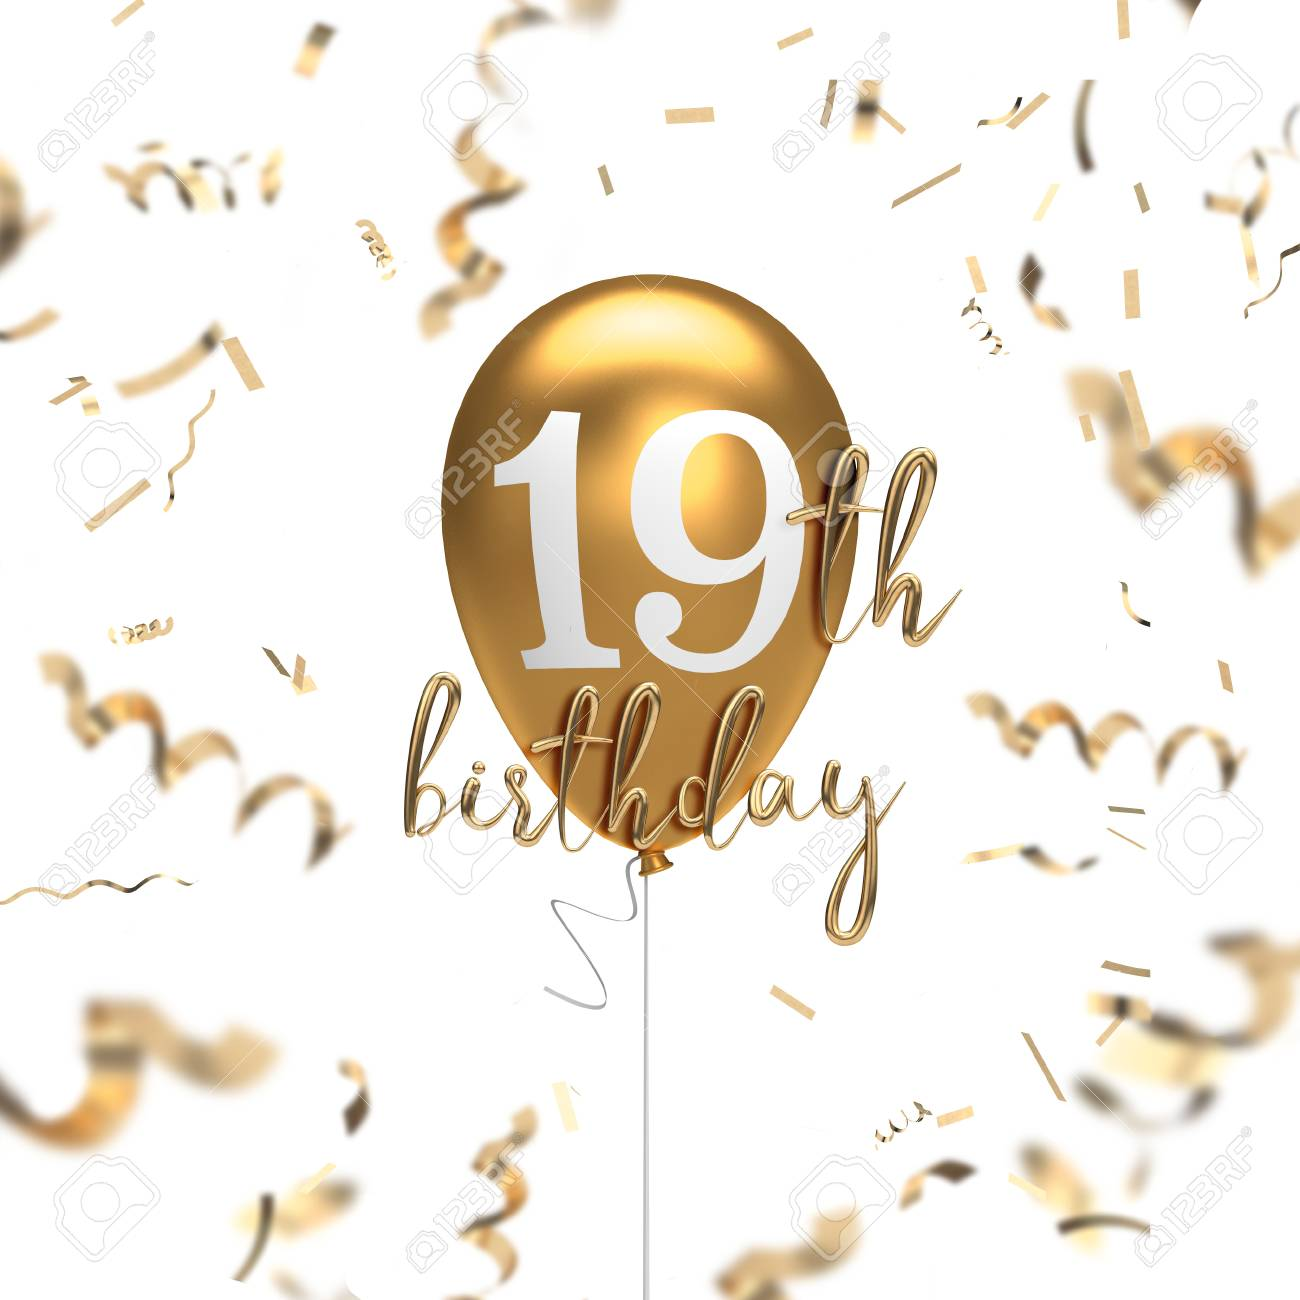 Happy 19th Birthday Gold Balloon Greeting Background 3d Rendering Stock Photo Picture And Royalty Free Image Image 105639550